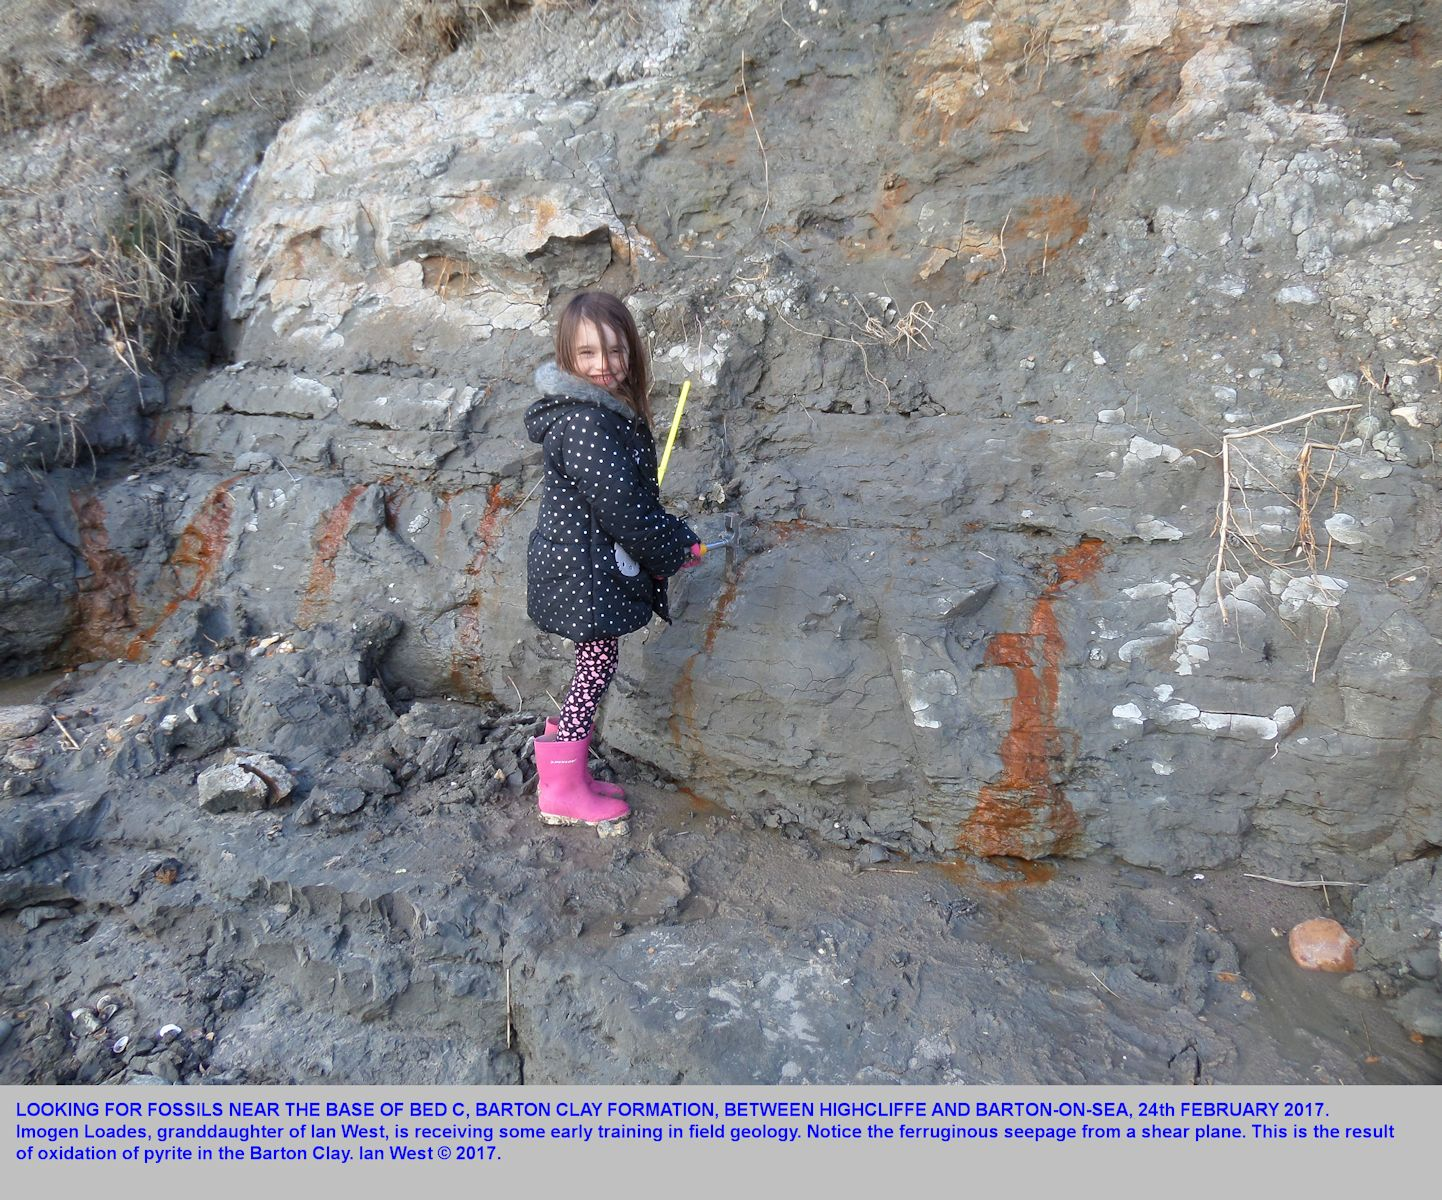 The fossiliferous Barton Clay in the cliffs between Highcliffe and  Barton-on-Sea, Hampshire, with Imogen Loades, fossil collecting, 24th February 2017